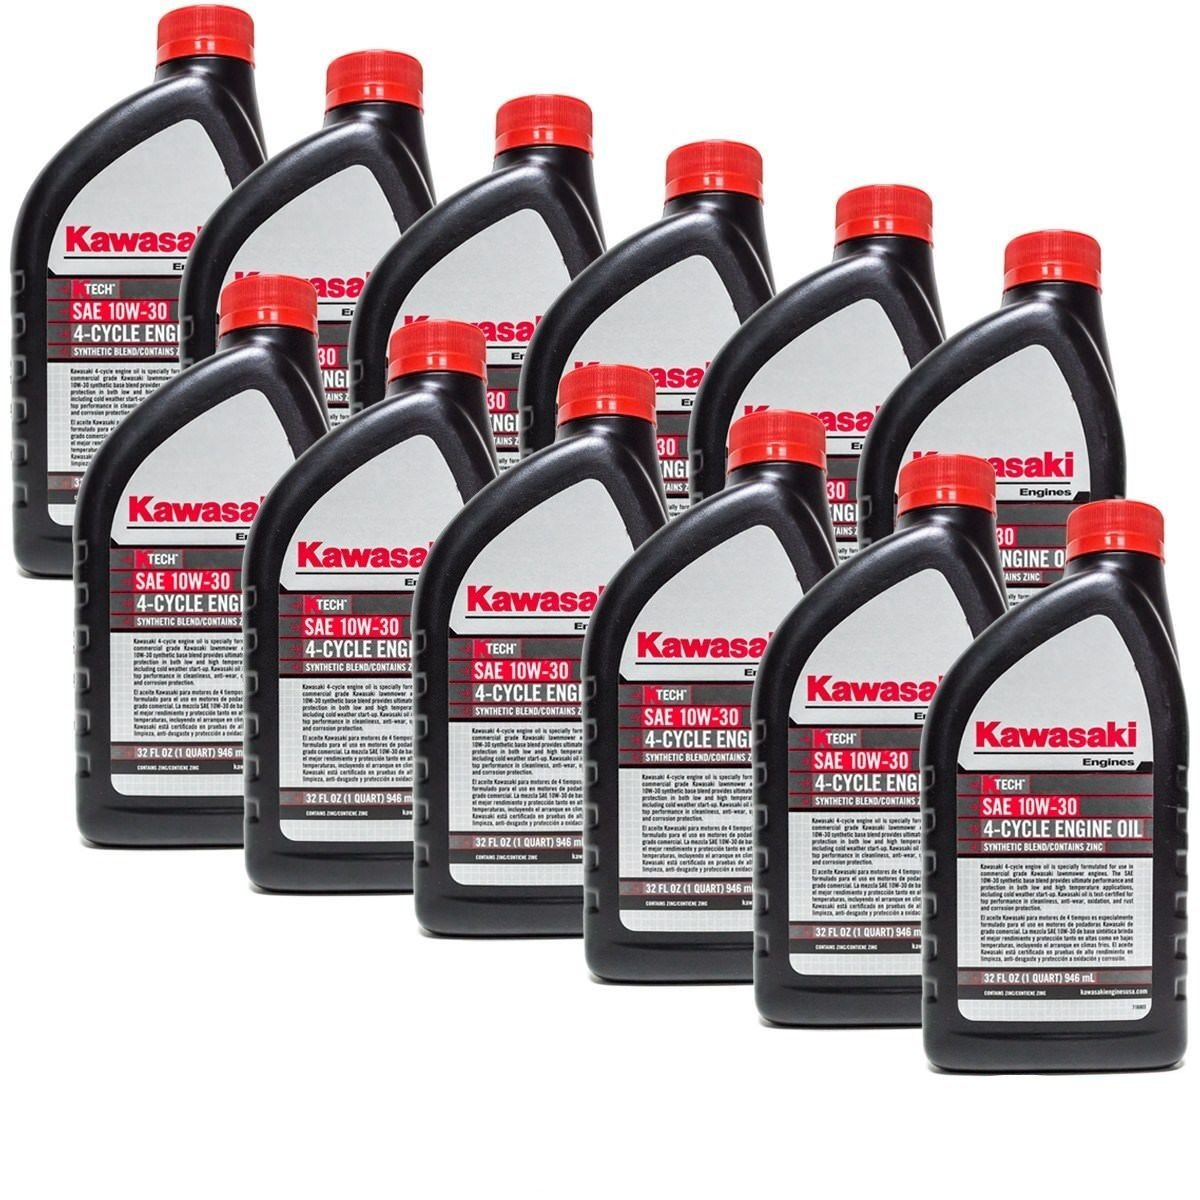 Kawasaki 12PK Quart Genuine OEM 4 Cycle Engine Oil K-TECH SAE 10W-30 99969-6081 by Kawasaki